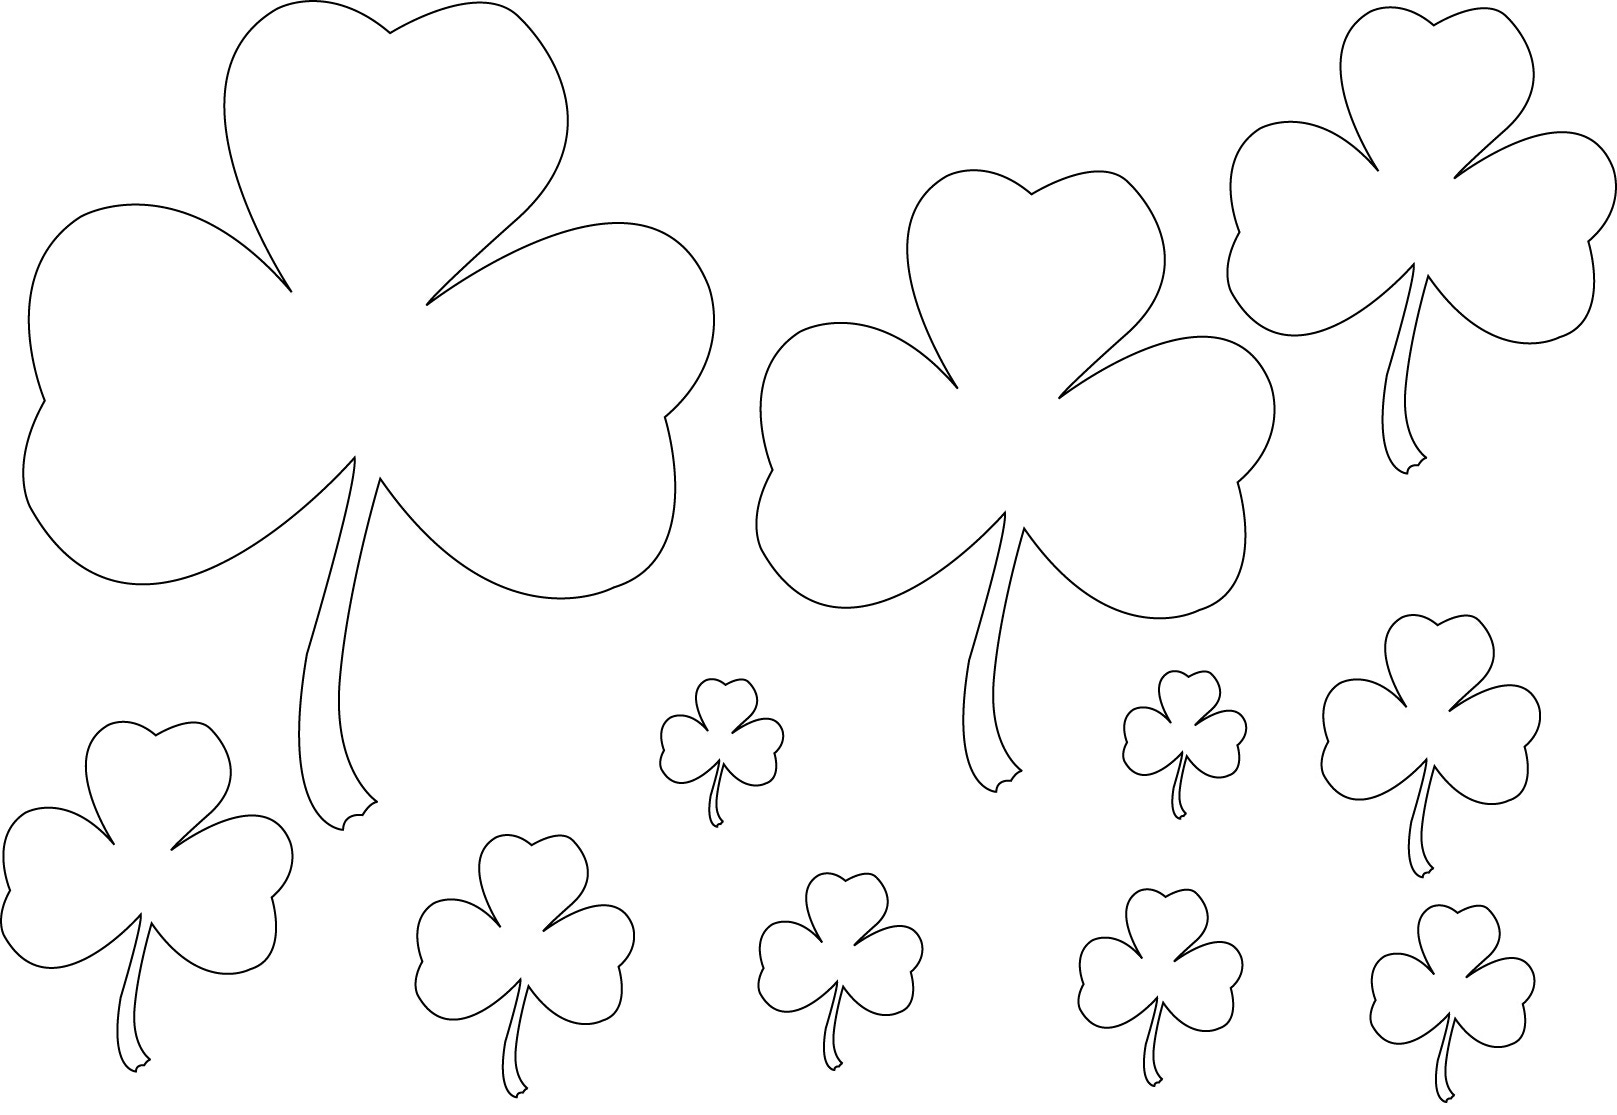 shamrock coloring pages pictures - Shamrock Coloring Page